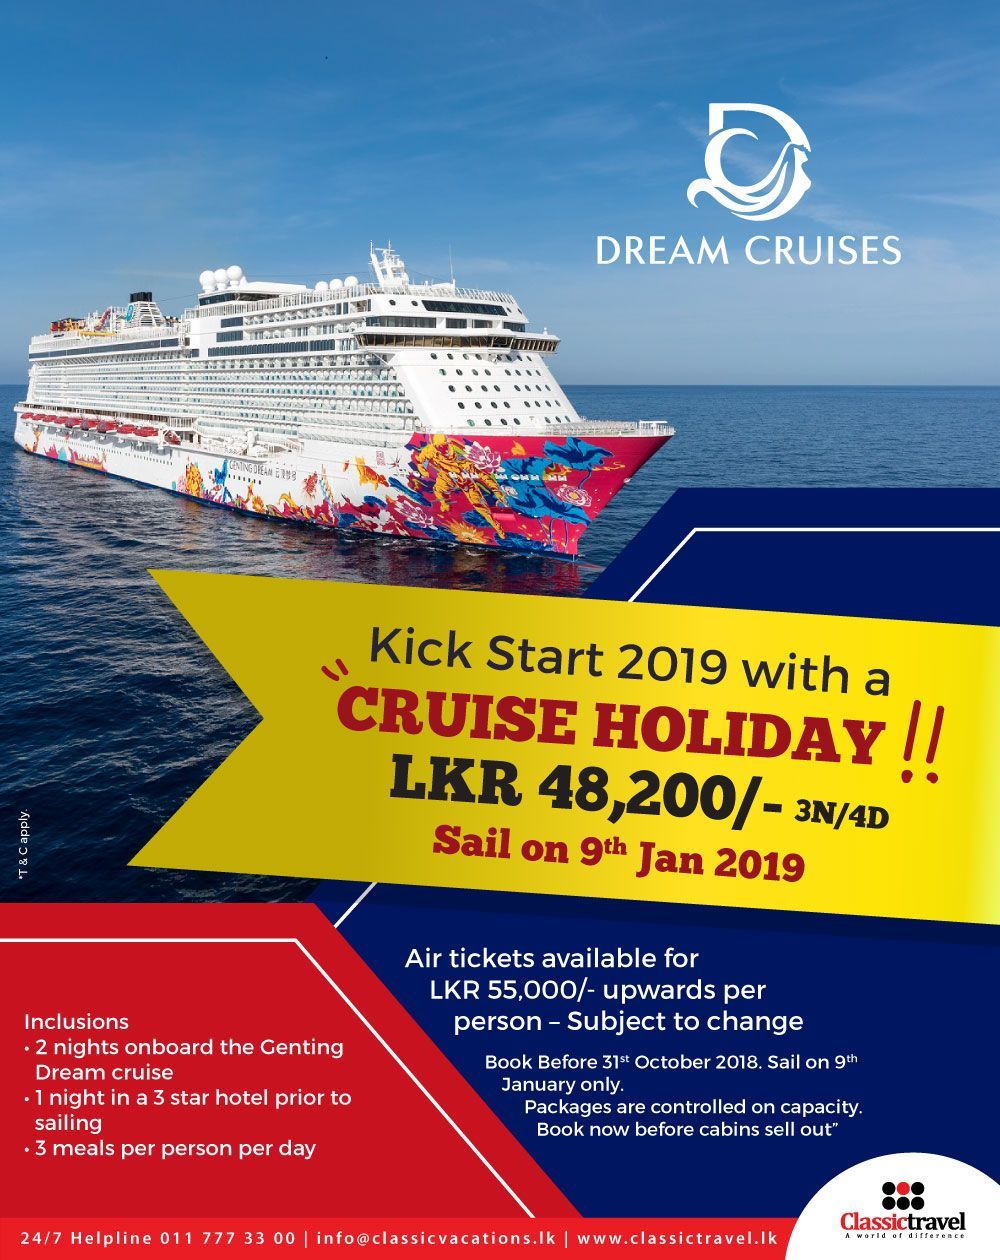 Dream Cruise In Singapore Lkr 105 200 P P Buy One Get One Free Offer Available Call 0117773300 Travel Vacations Holidays Dreamcruise Singapore Classi